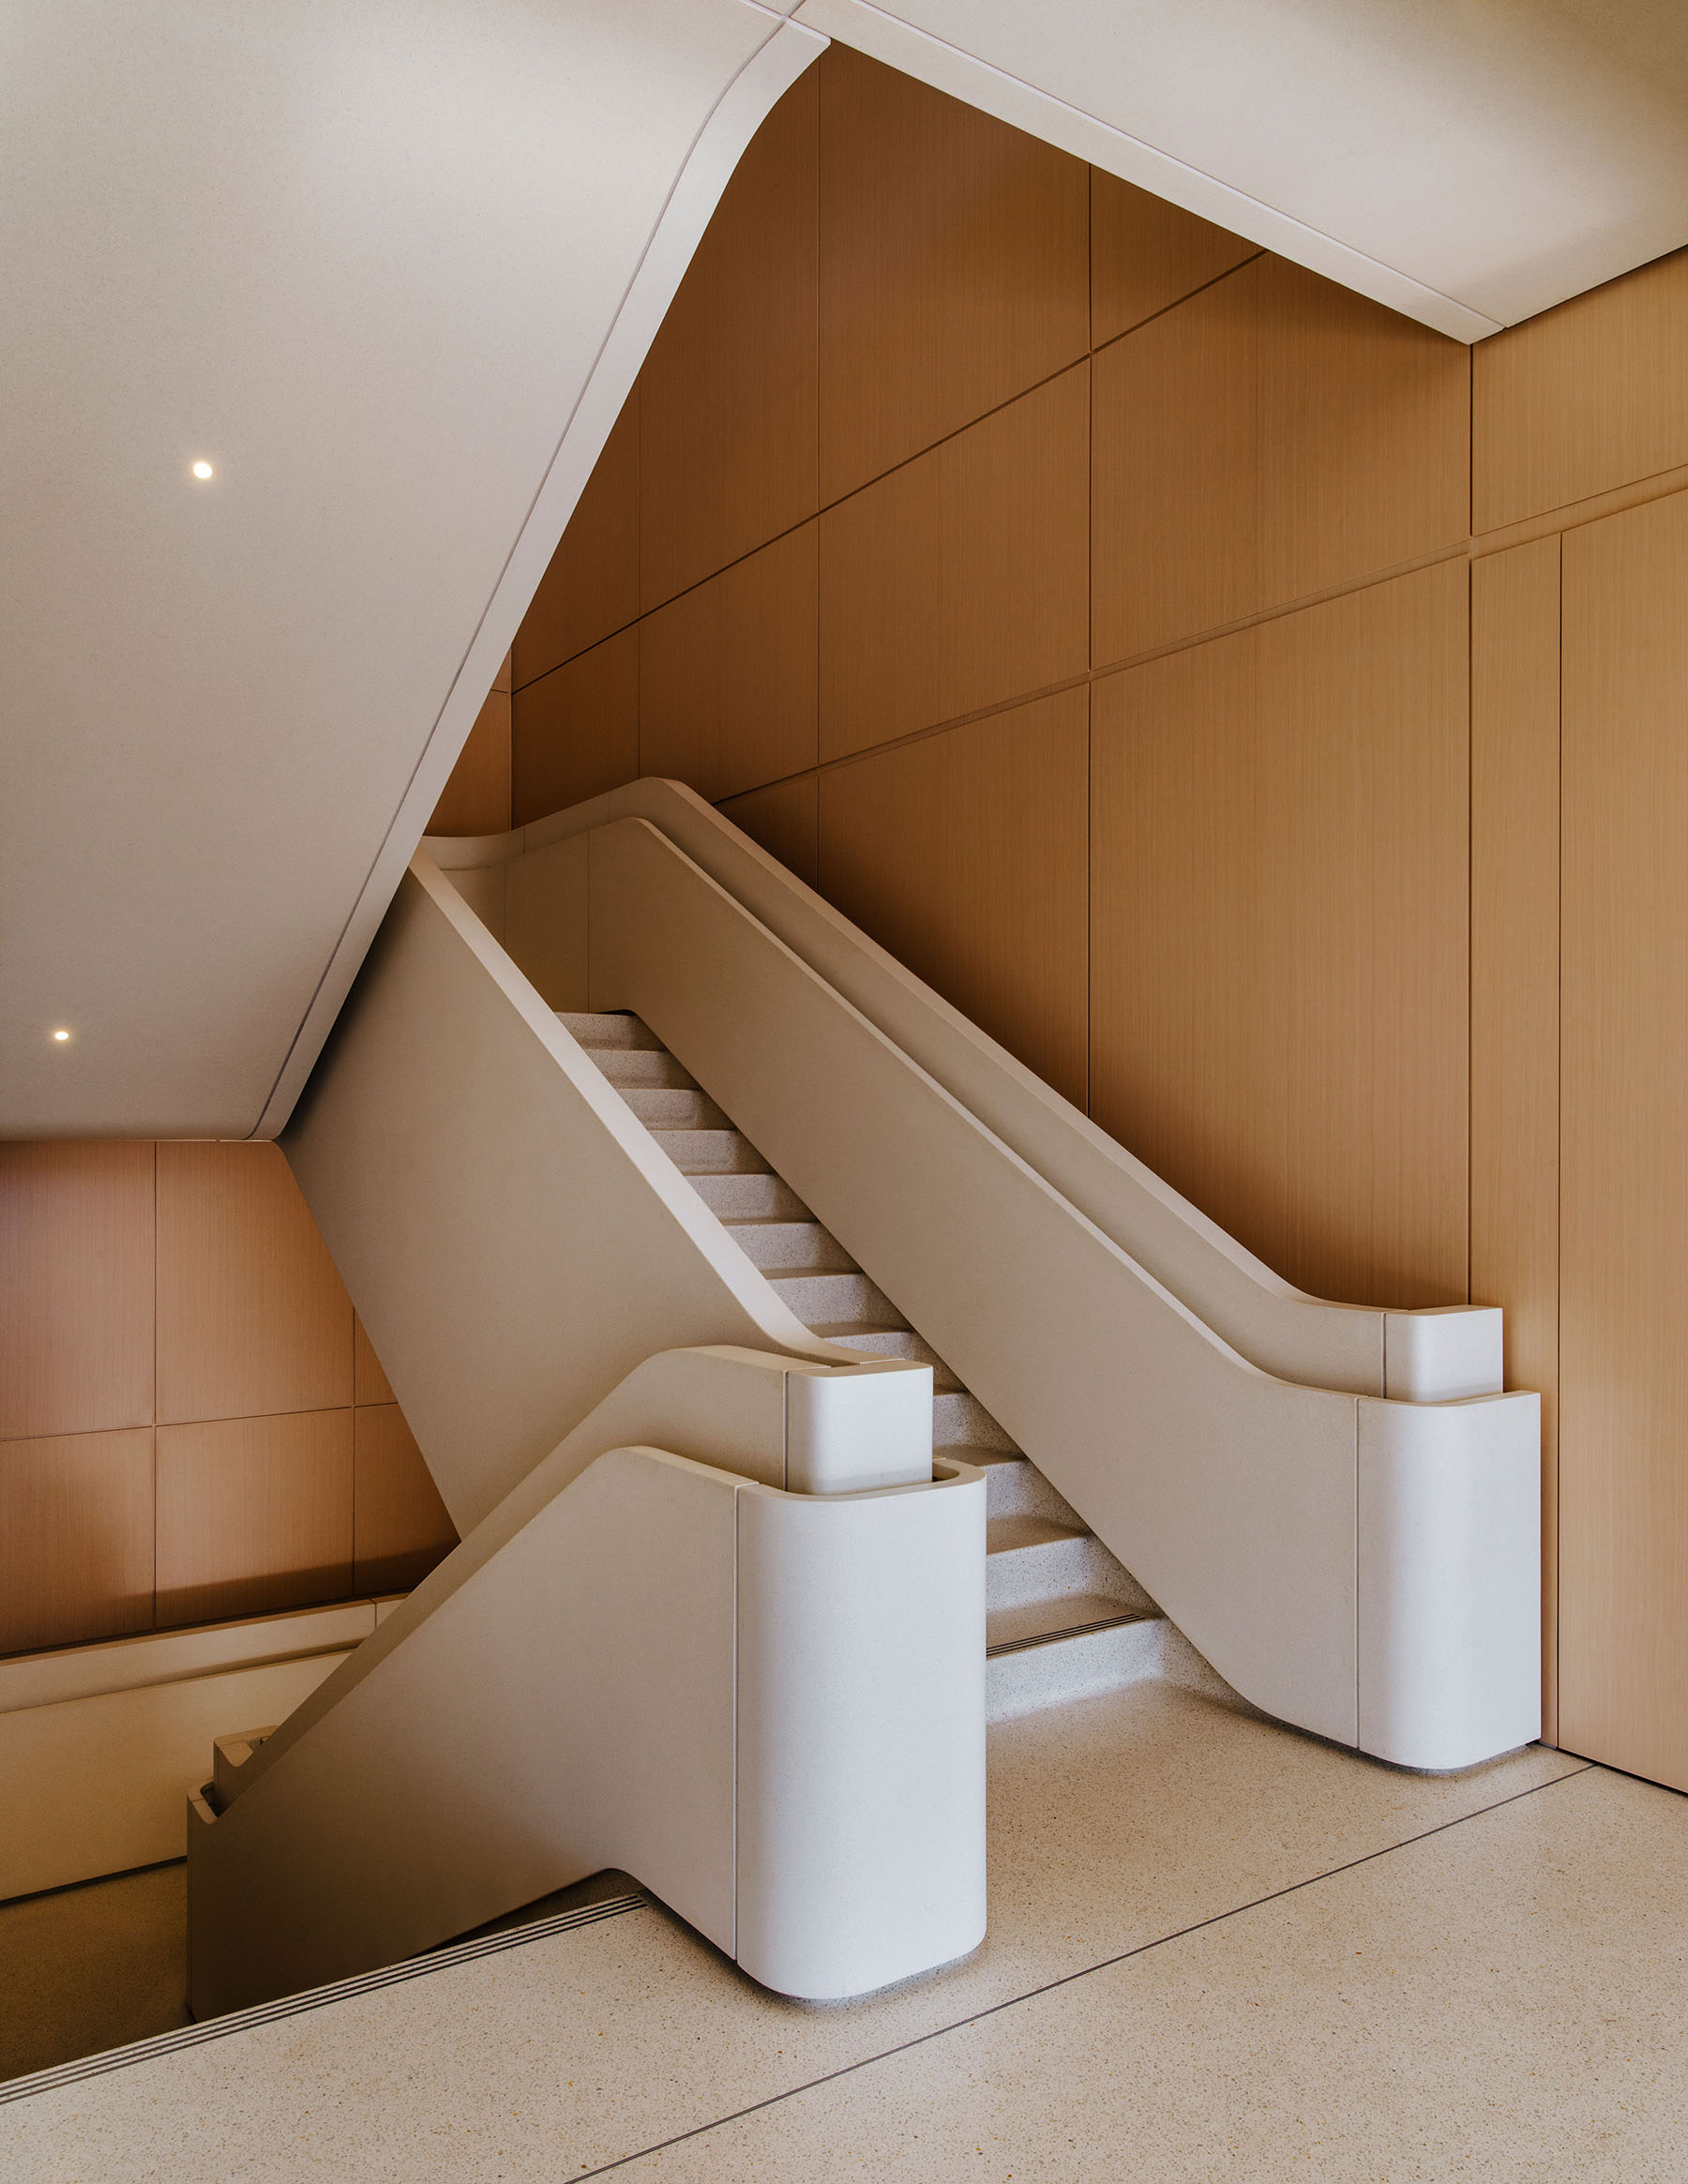 staircase inside apples foster partners designed cupertino headquarters